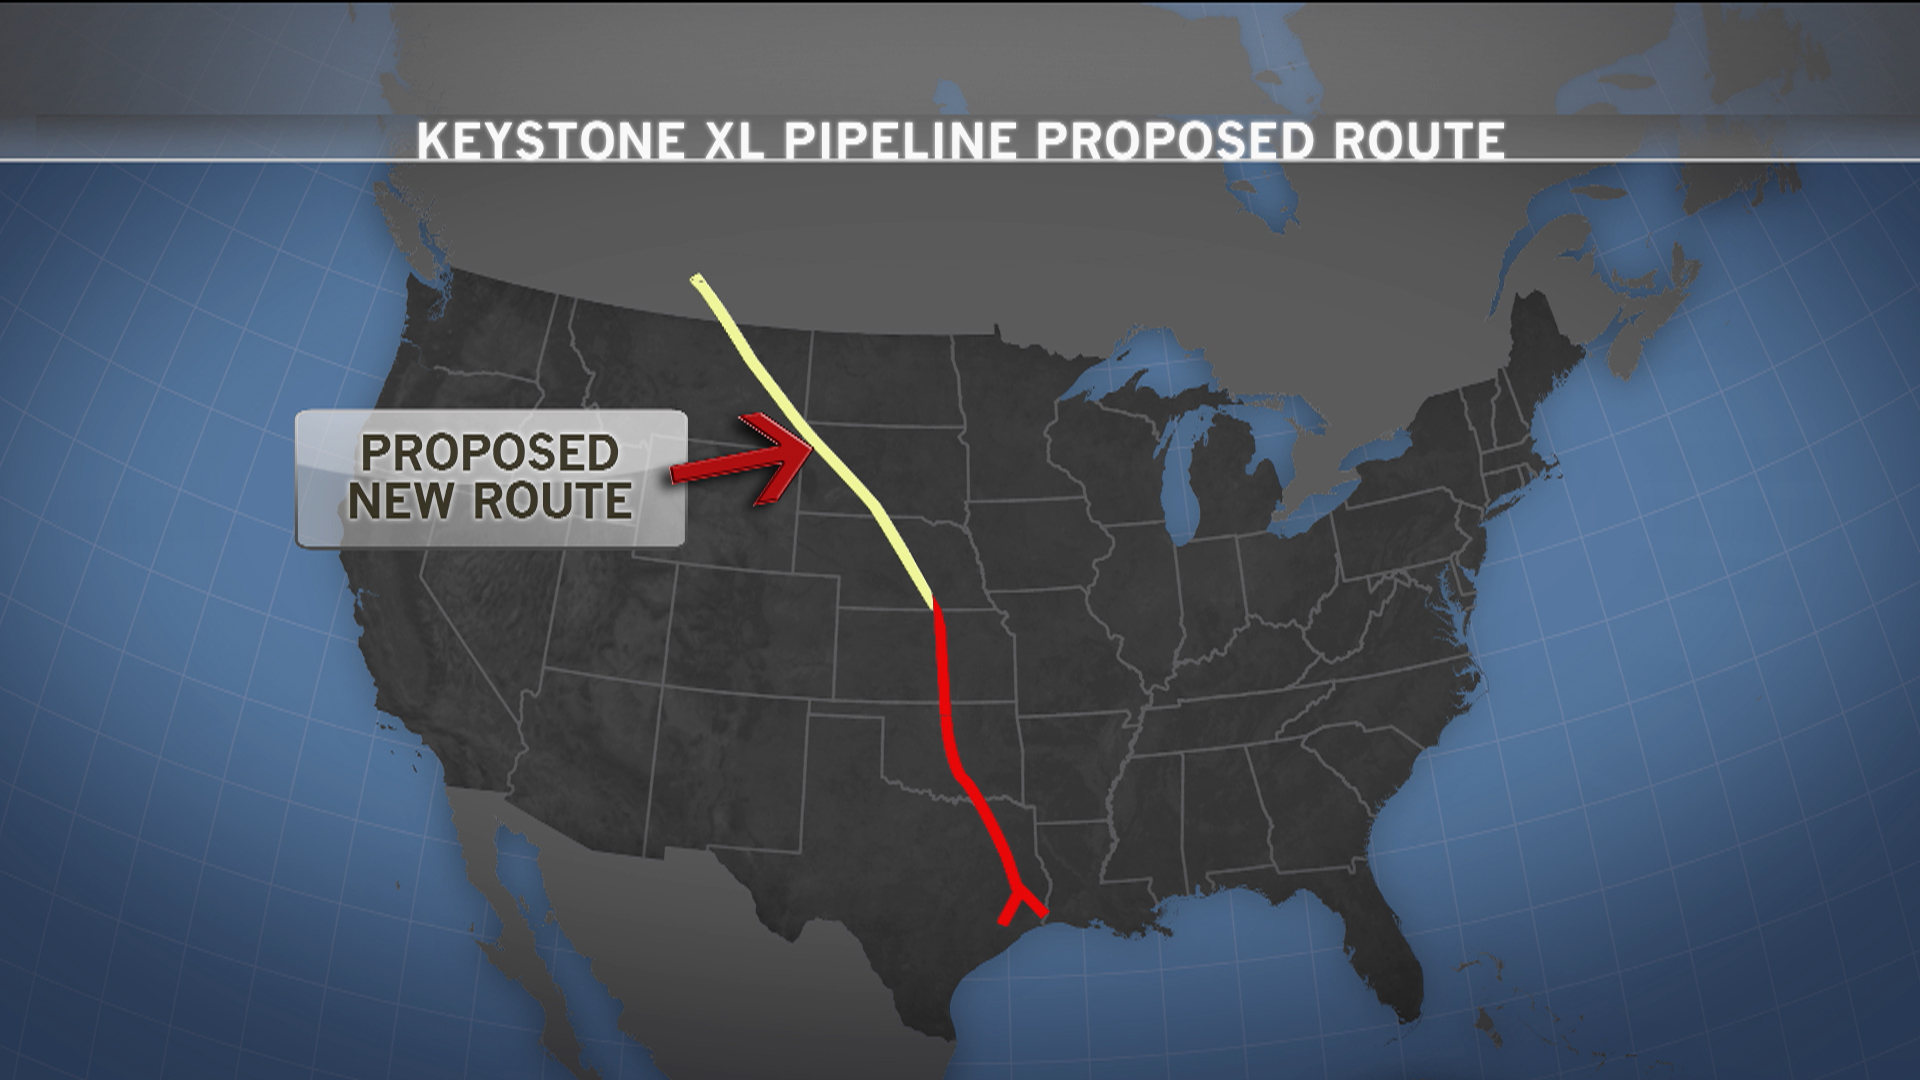 Keystone XL: Time to end the addiction